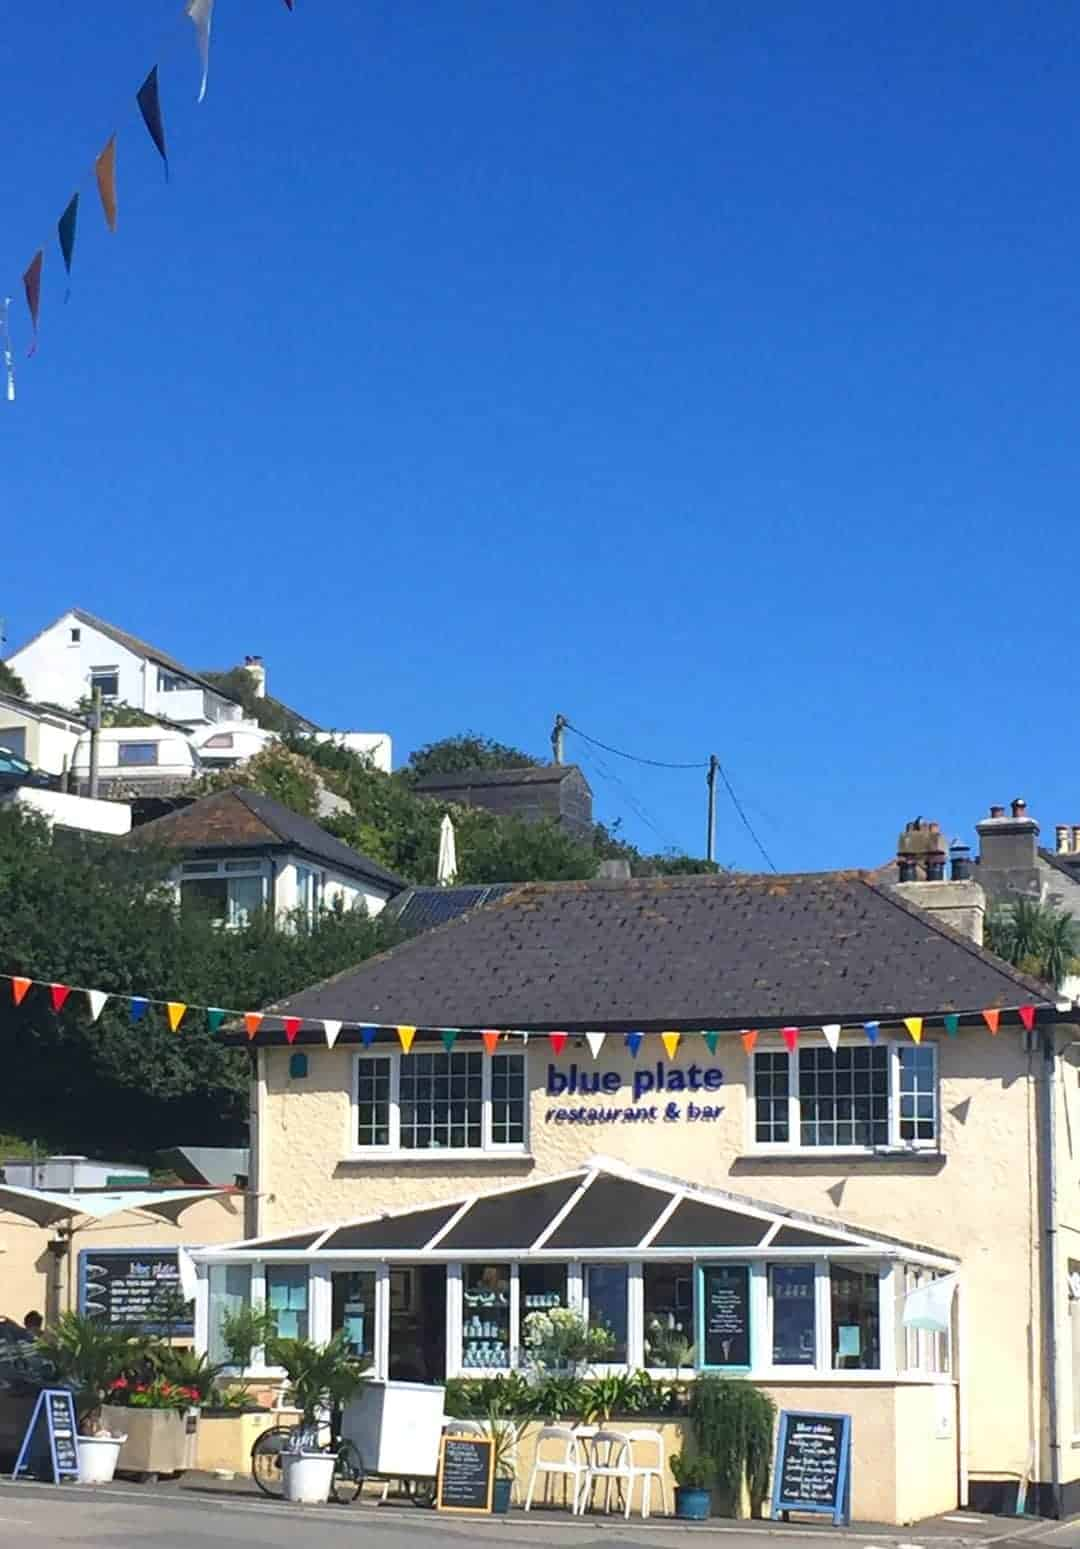 Blue Plate Downderry cornwall restaurant bar and deli by the sea